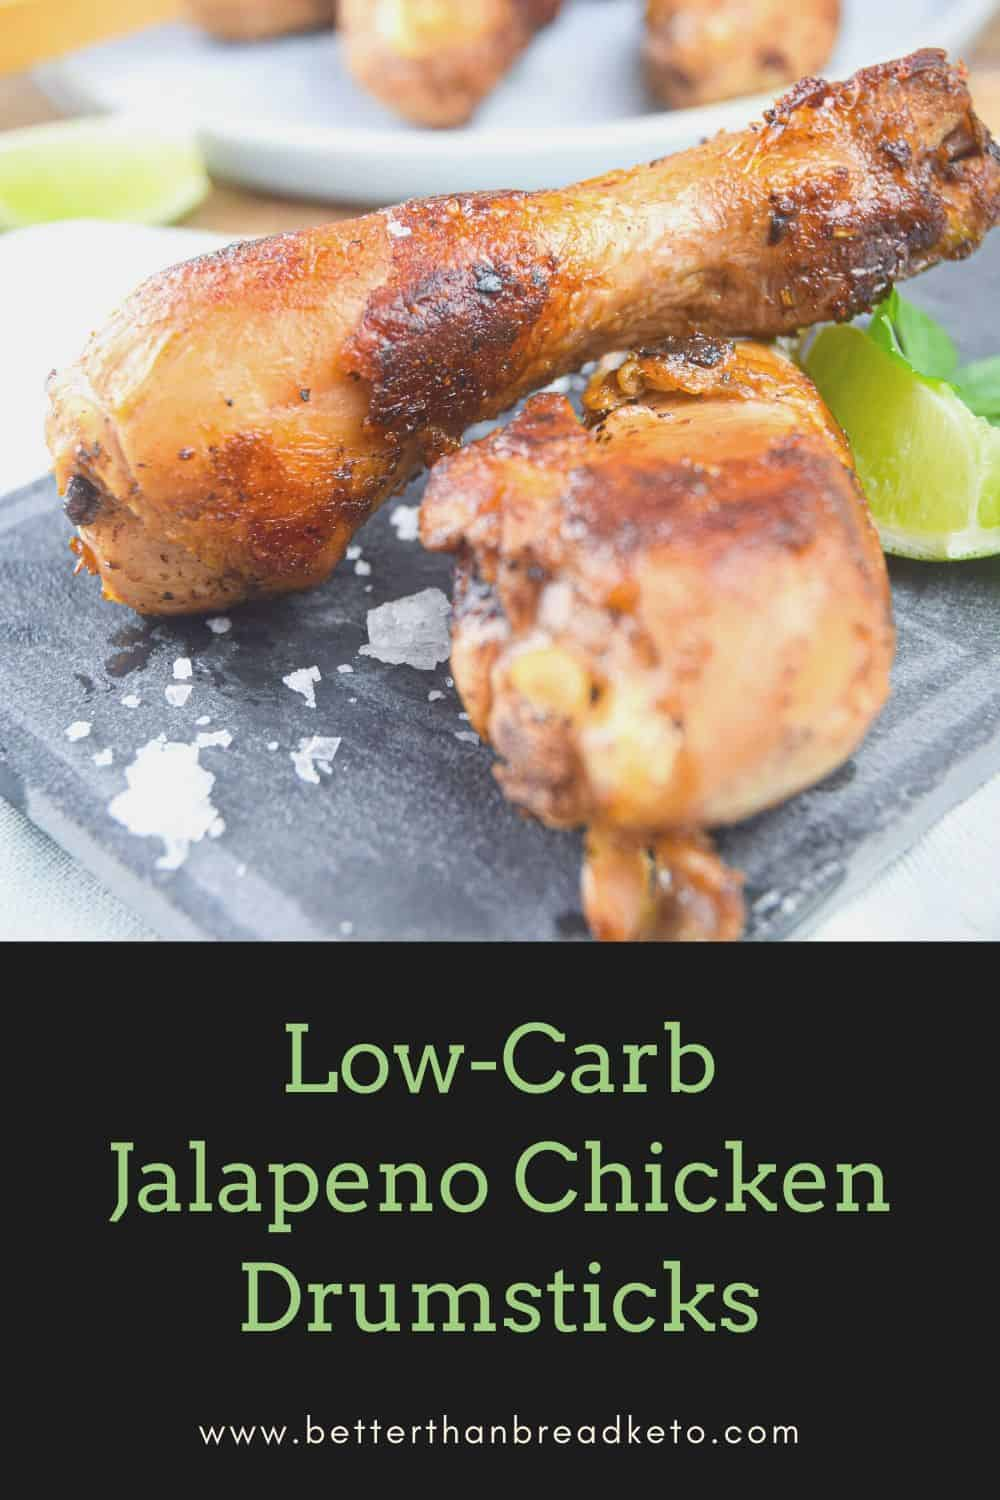 Low-Carb Jalapeno Chicken Drumsticks